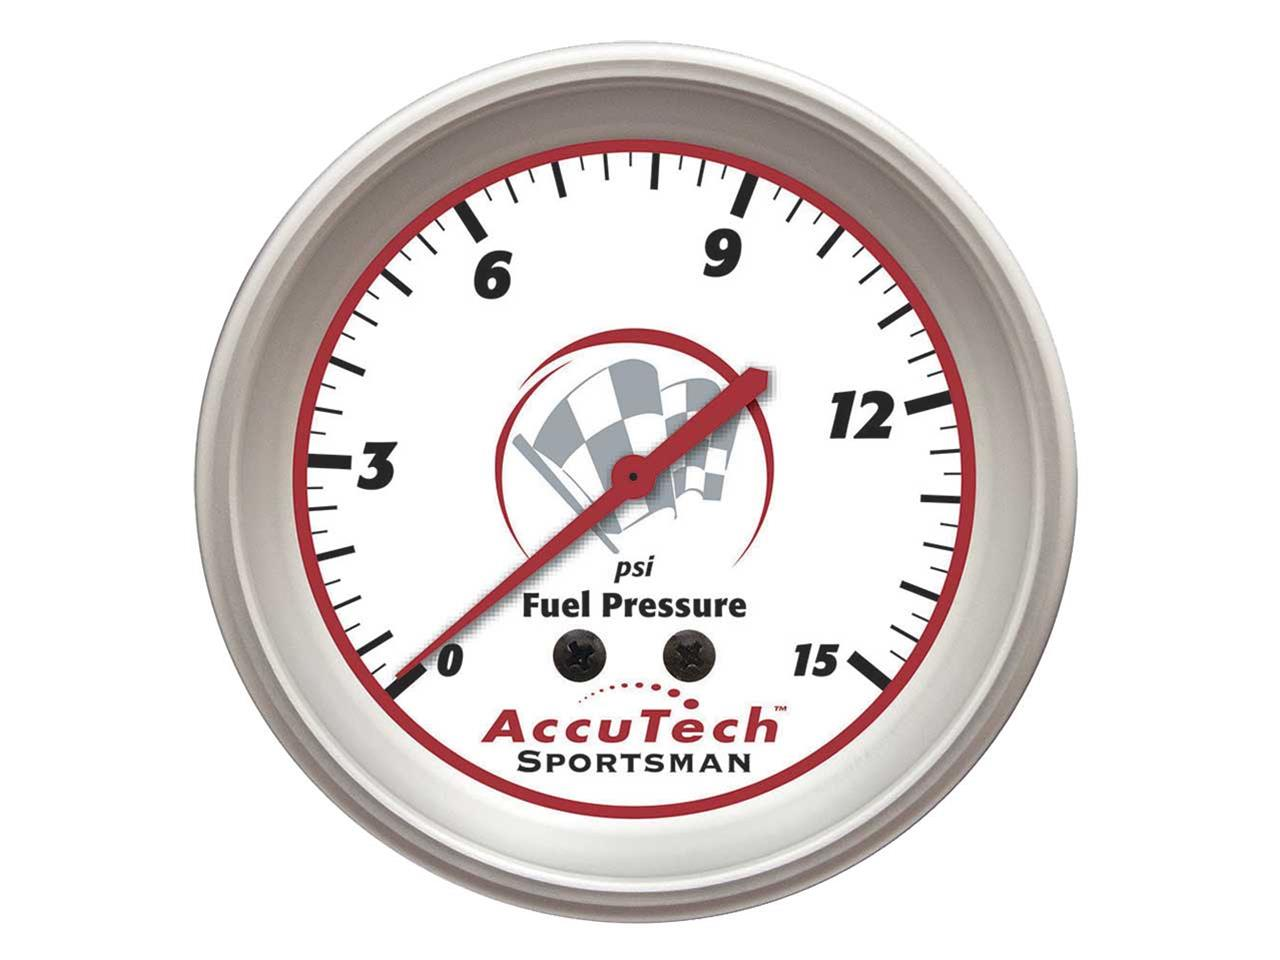 Picture of Longacre Accutech Sportsman Replacement Gauges